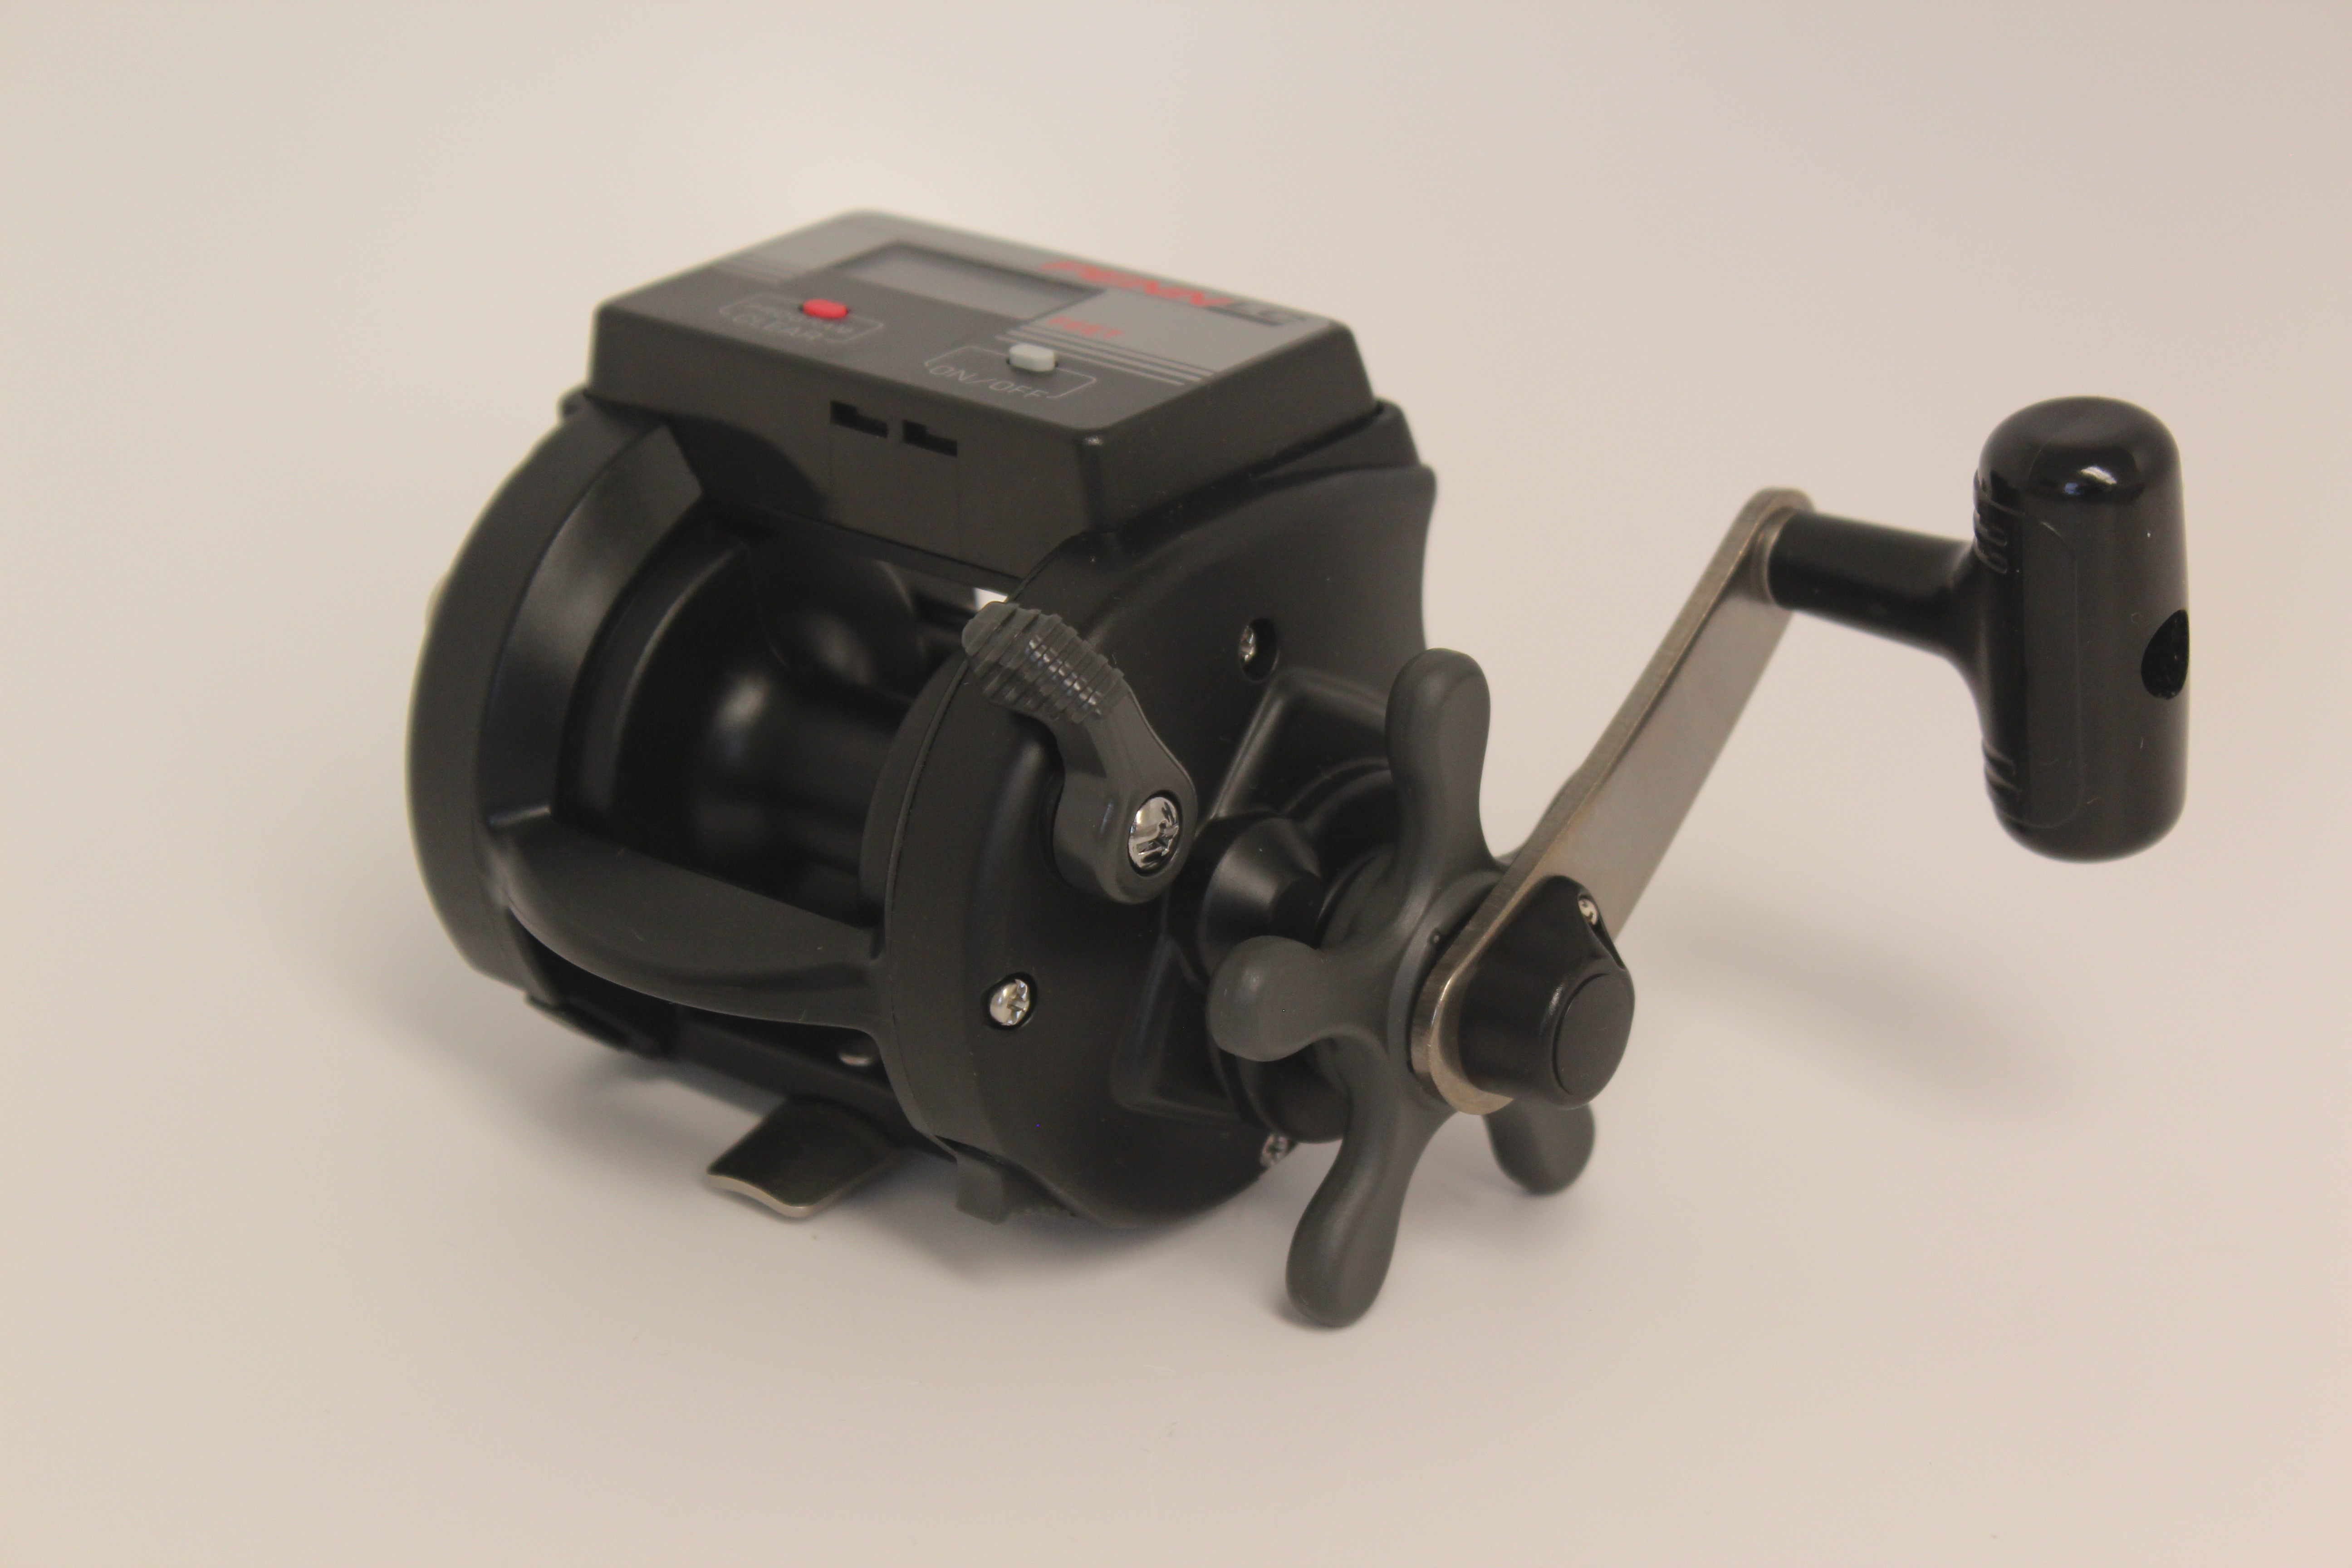 Penn 855lc 875lc 895lc line counter reel specs for Line counter fishing reels